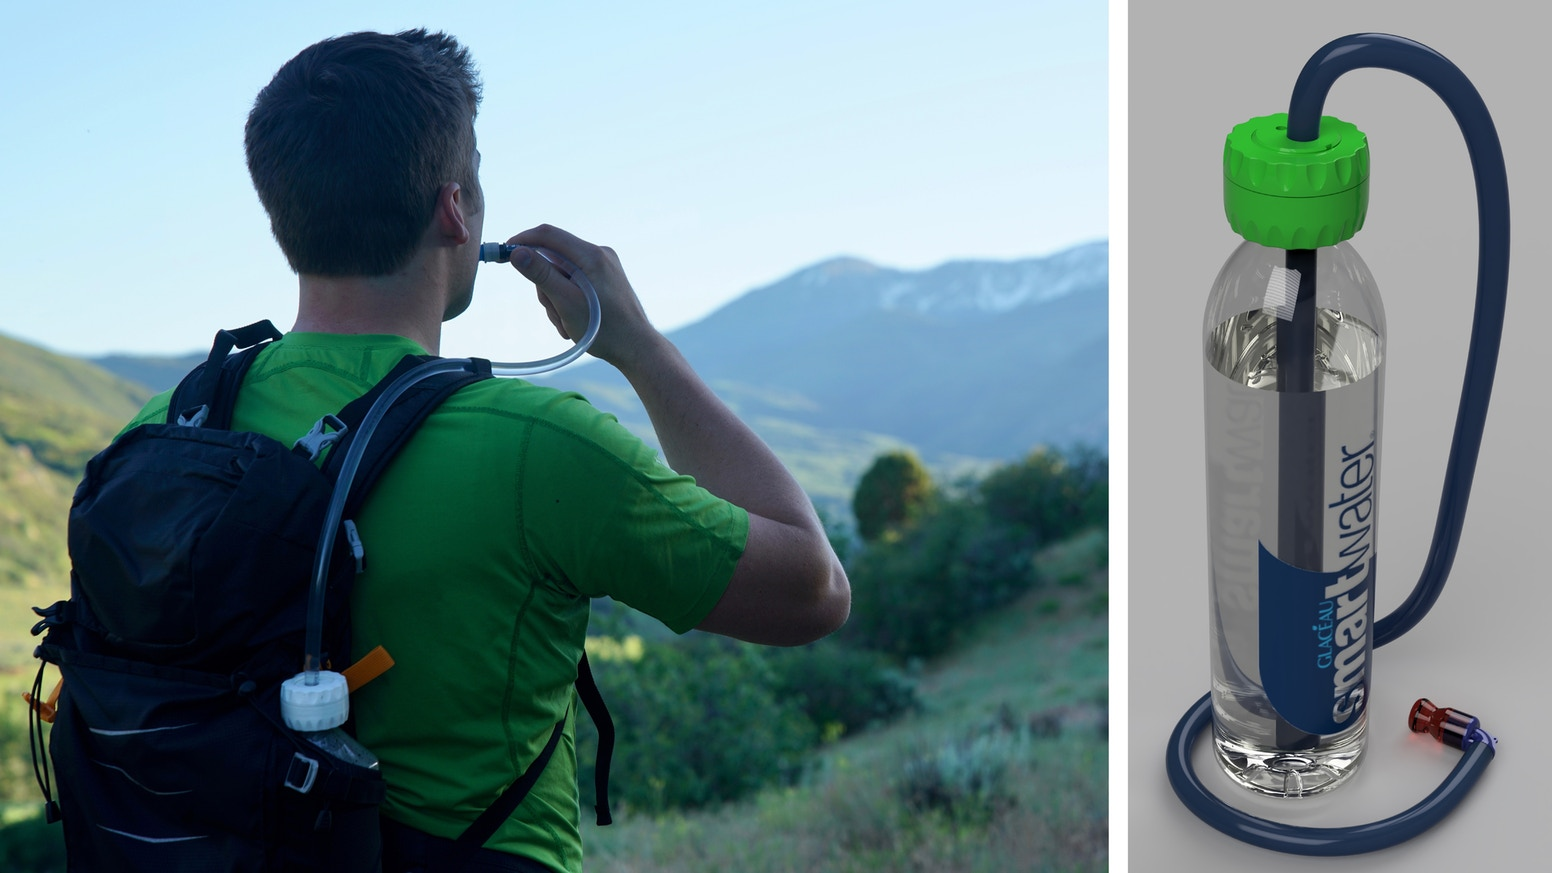 In one motion, it grips, seals and turns virtually any bottle into an instant hydration pack.